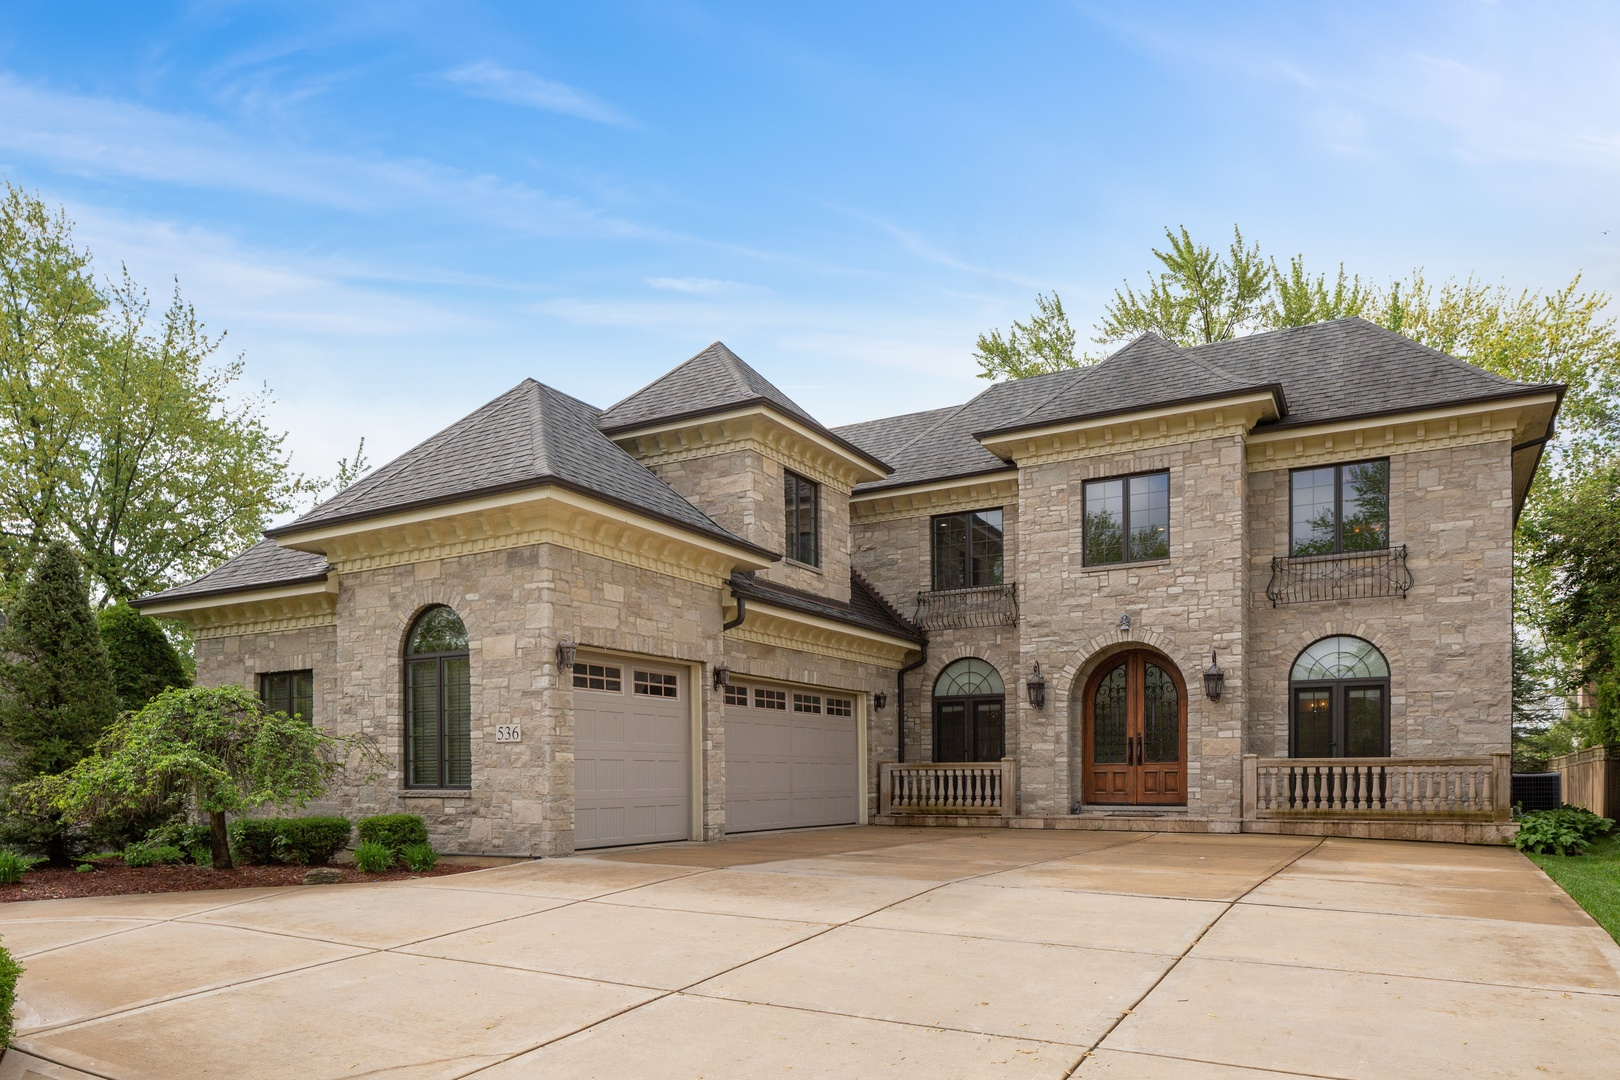 536 WEST 58TH STREET, HINSDALE, IL 60521